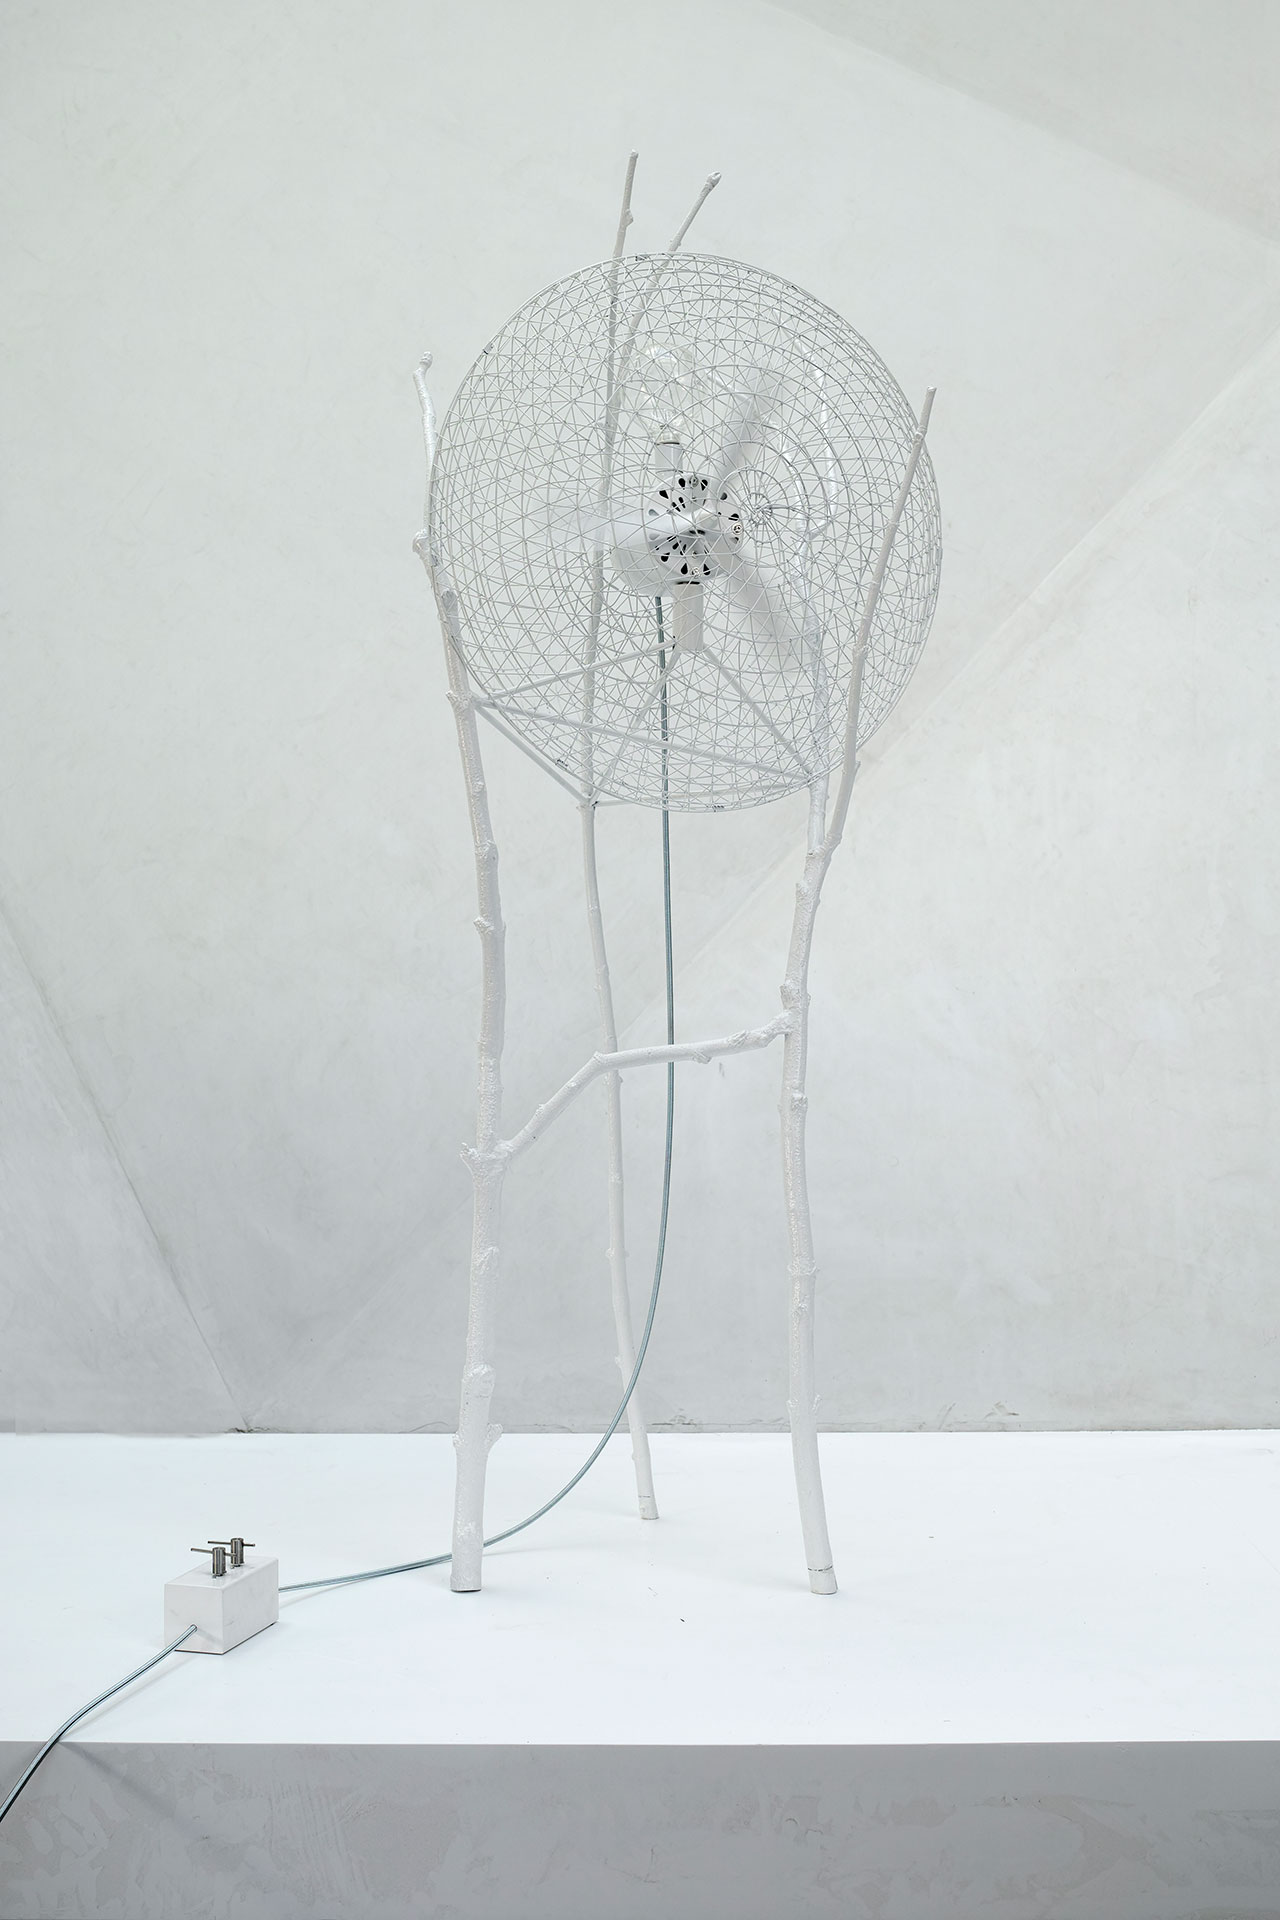 SURVIVAL KIT by Celine & Tatiana Stephan. Powder Coated White Aluminum, 115 x 100 x 205 cm.